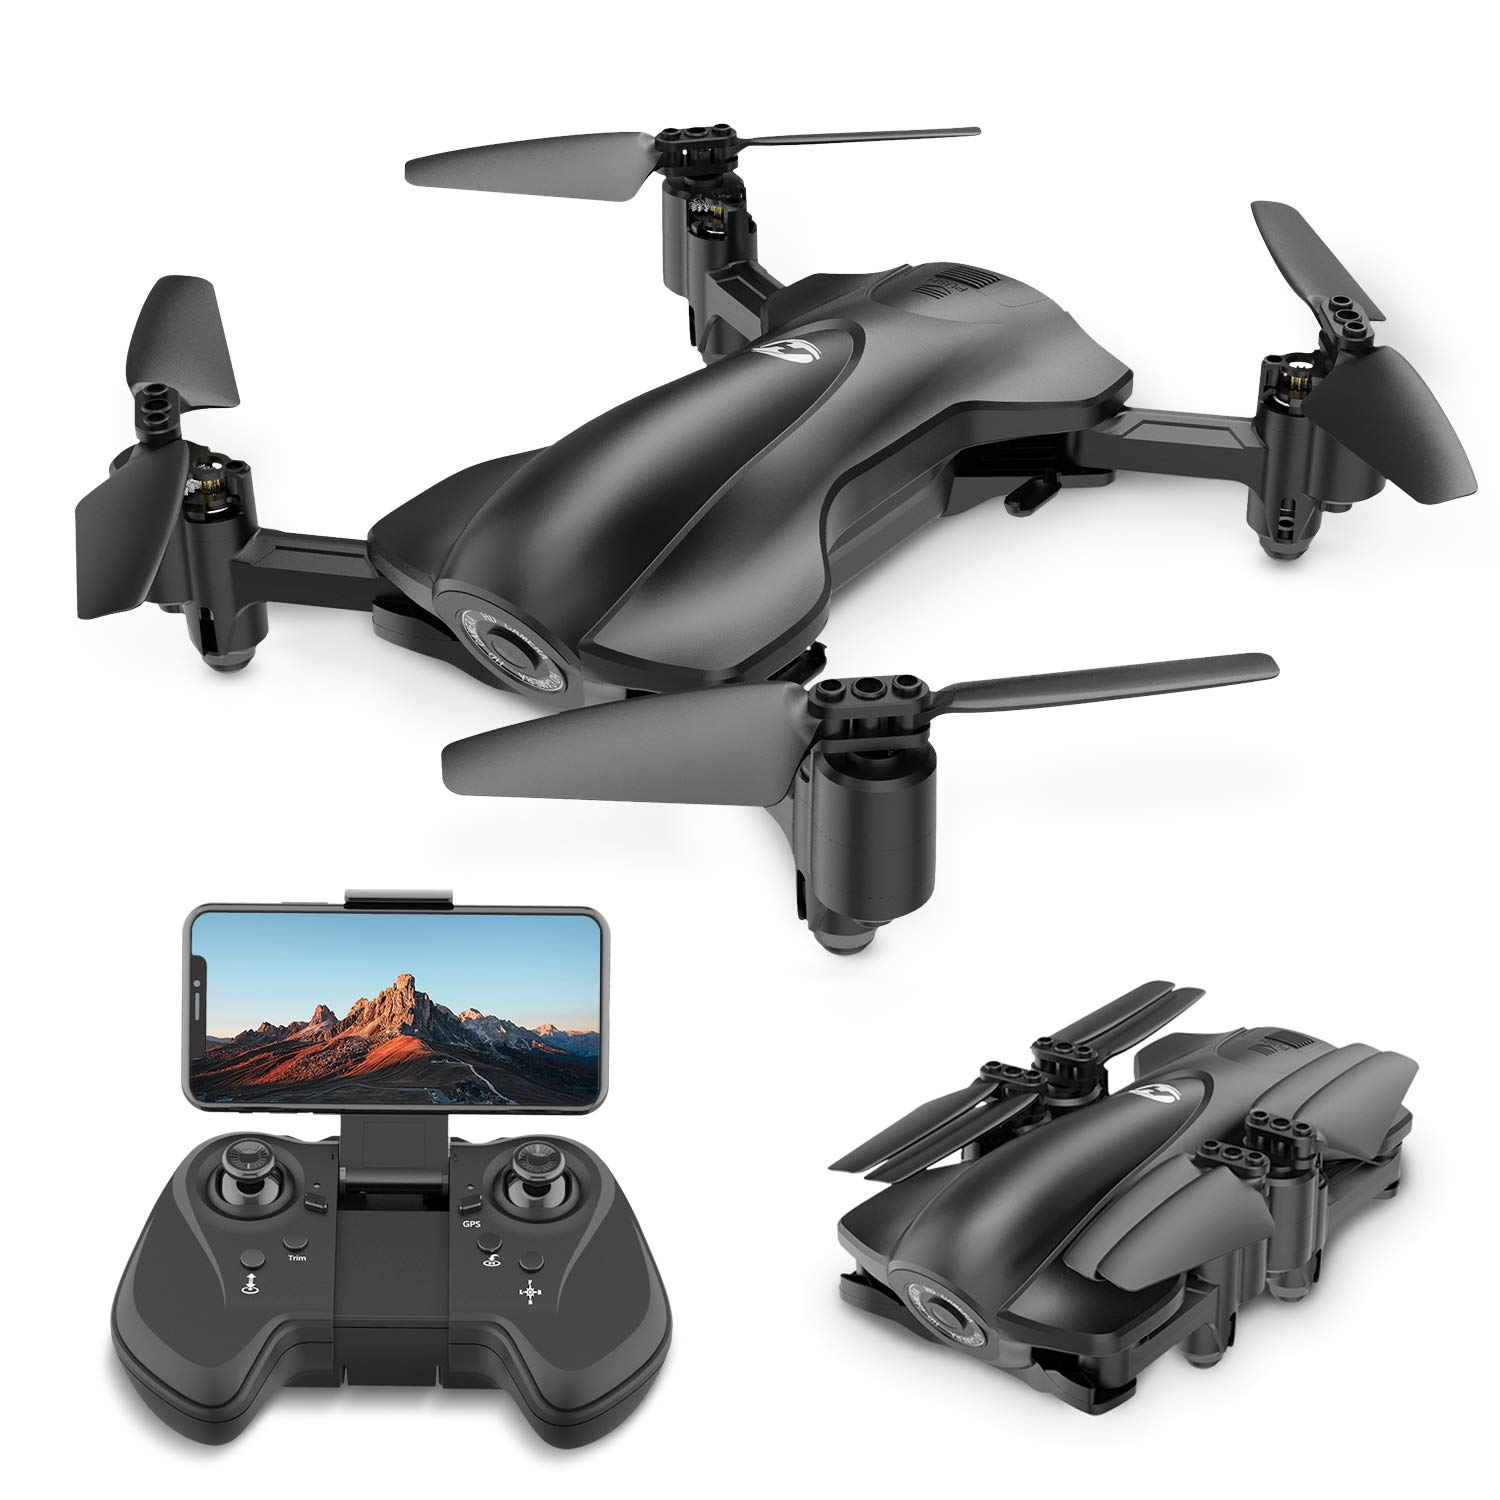 Holy Stone GPS Drone FPV Drones with Camera for Adults 1080P HD Live Video, Foldable Drone for Beginners, RC Quadcopter with GPS Return Home, Follow Me, Altitude Hold and 5G WiFi Transmission, HS165 by Holy Stone